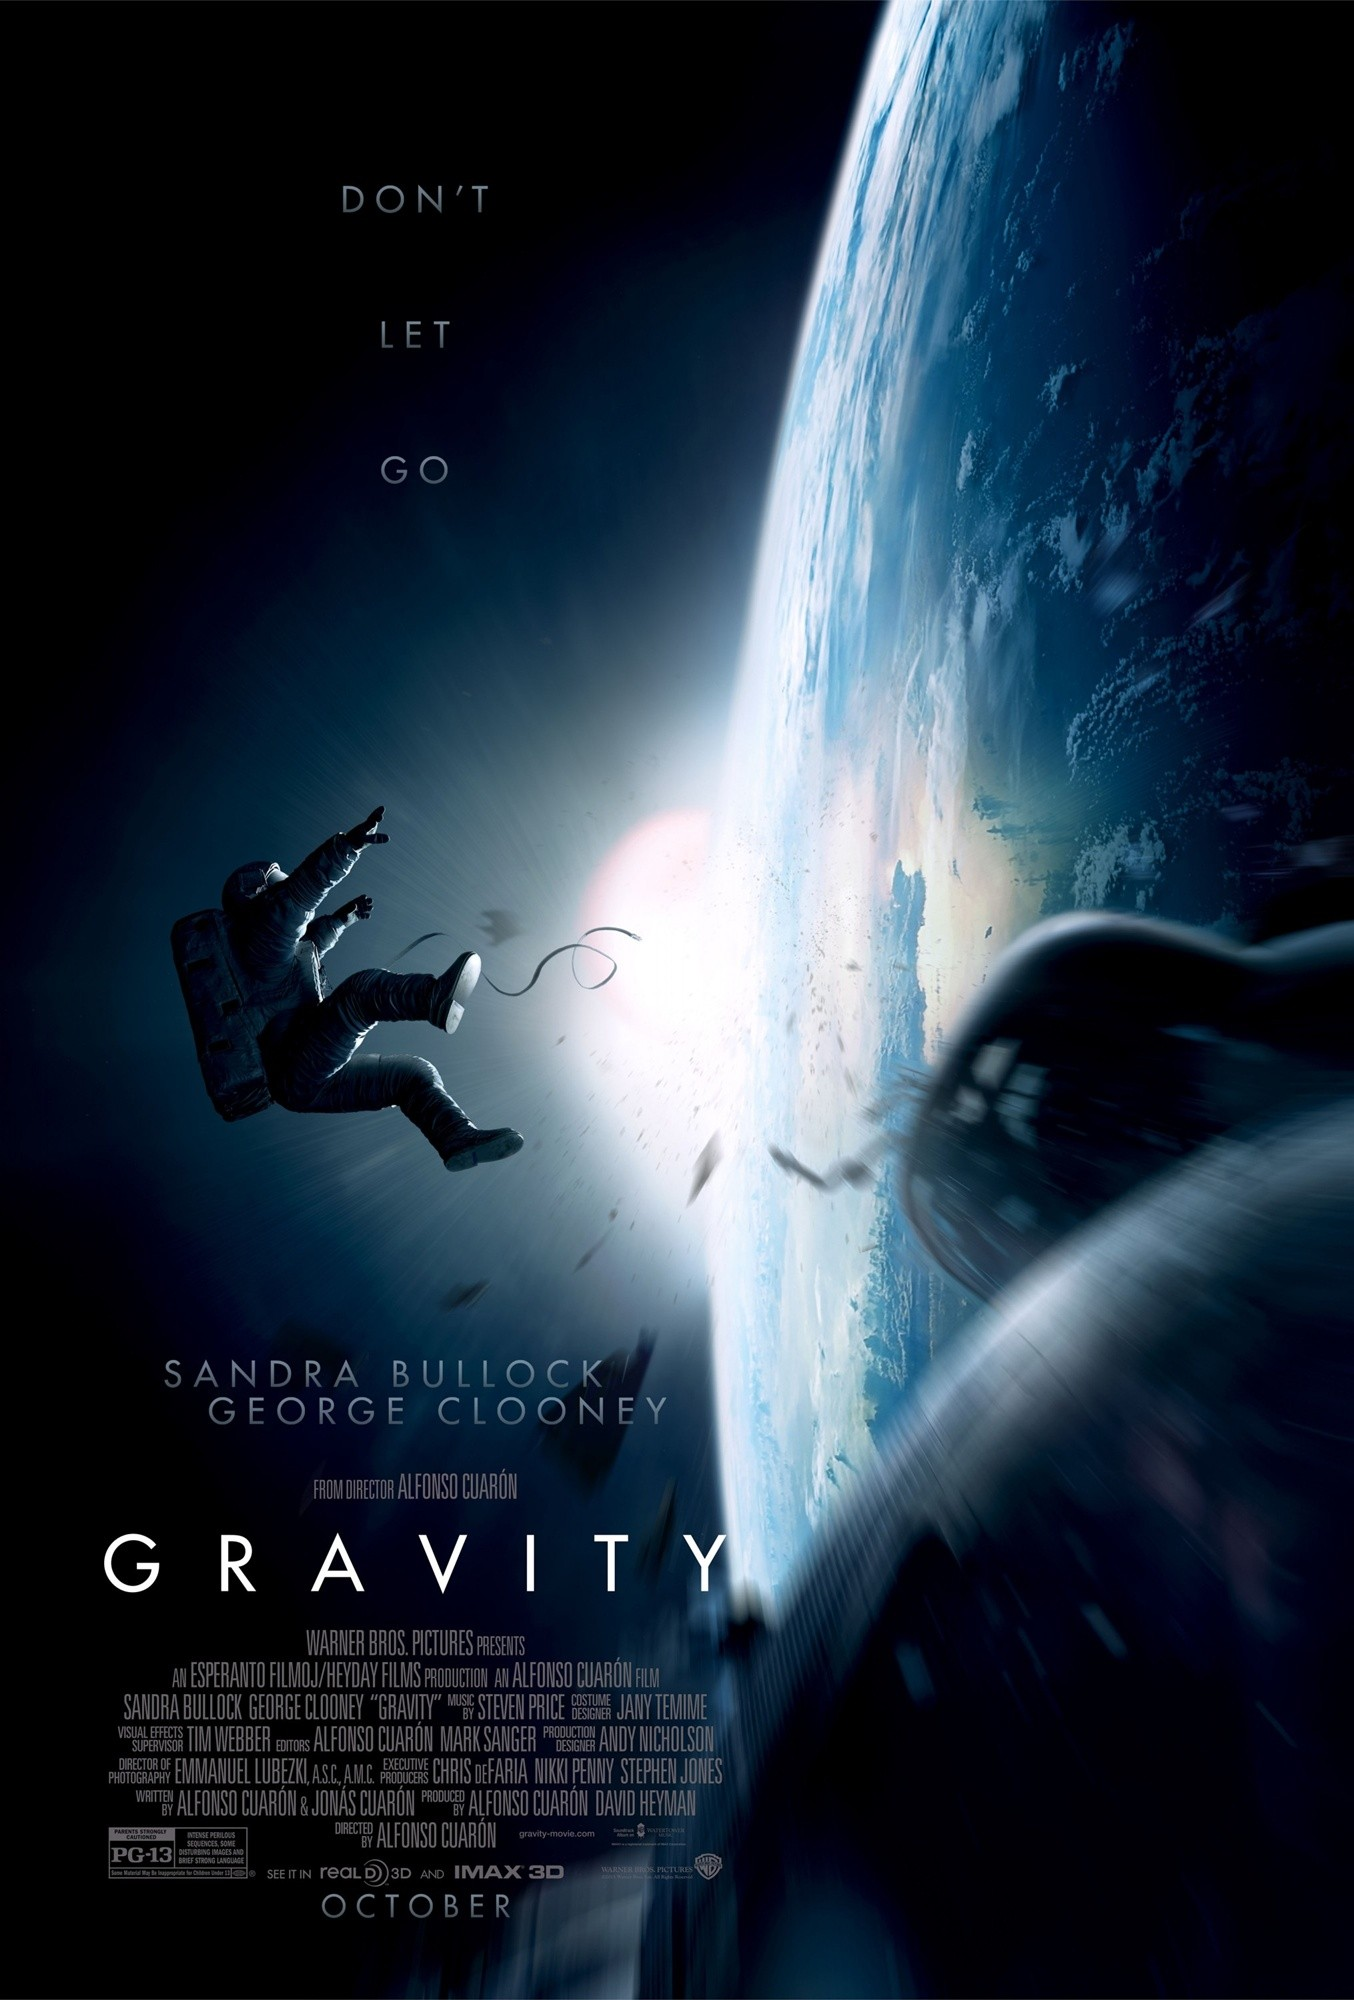 https://i0.wp.com/www.aceshowbiz.com/images/still/gravity-poster01.jpg